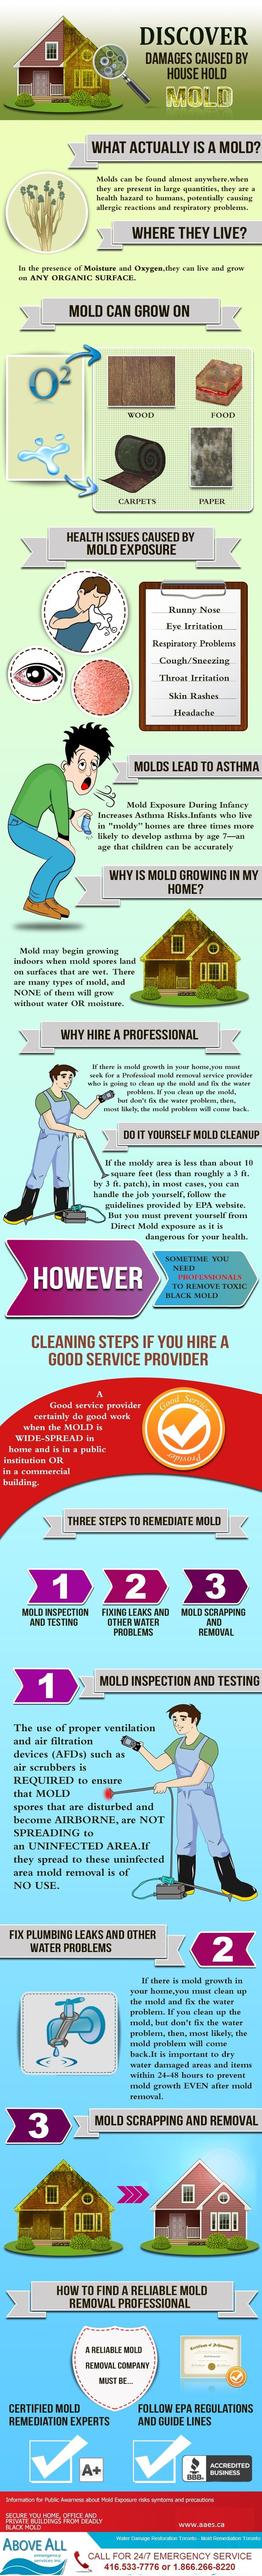 Why Mold Inspection Before Buying a Home